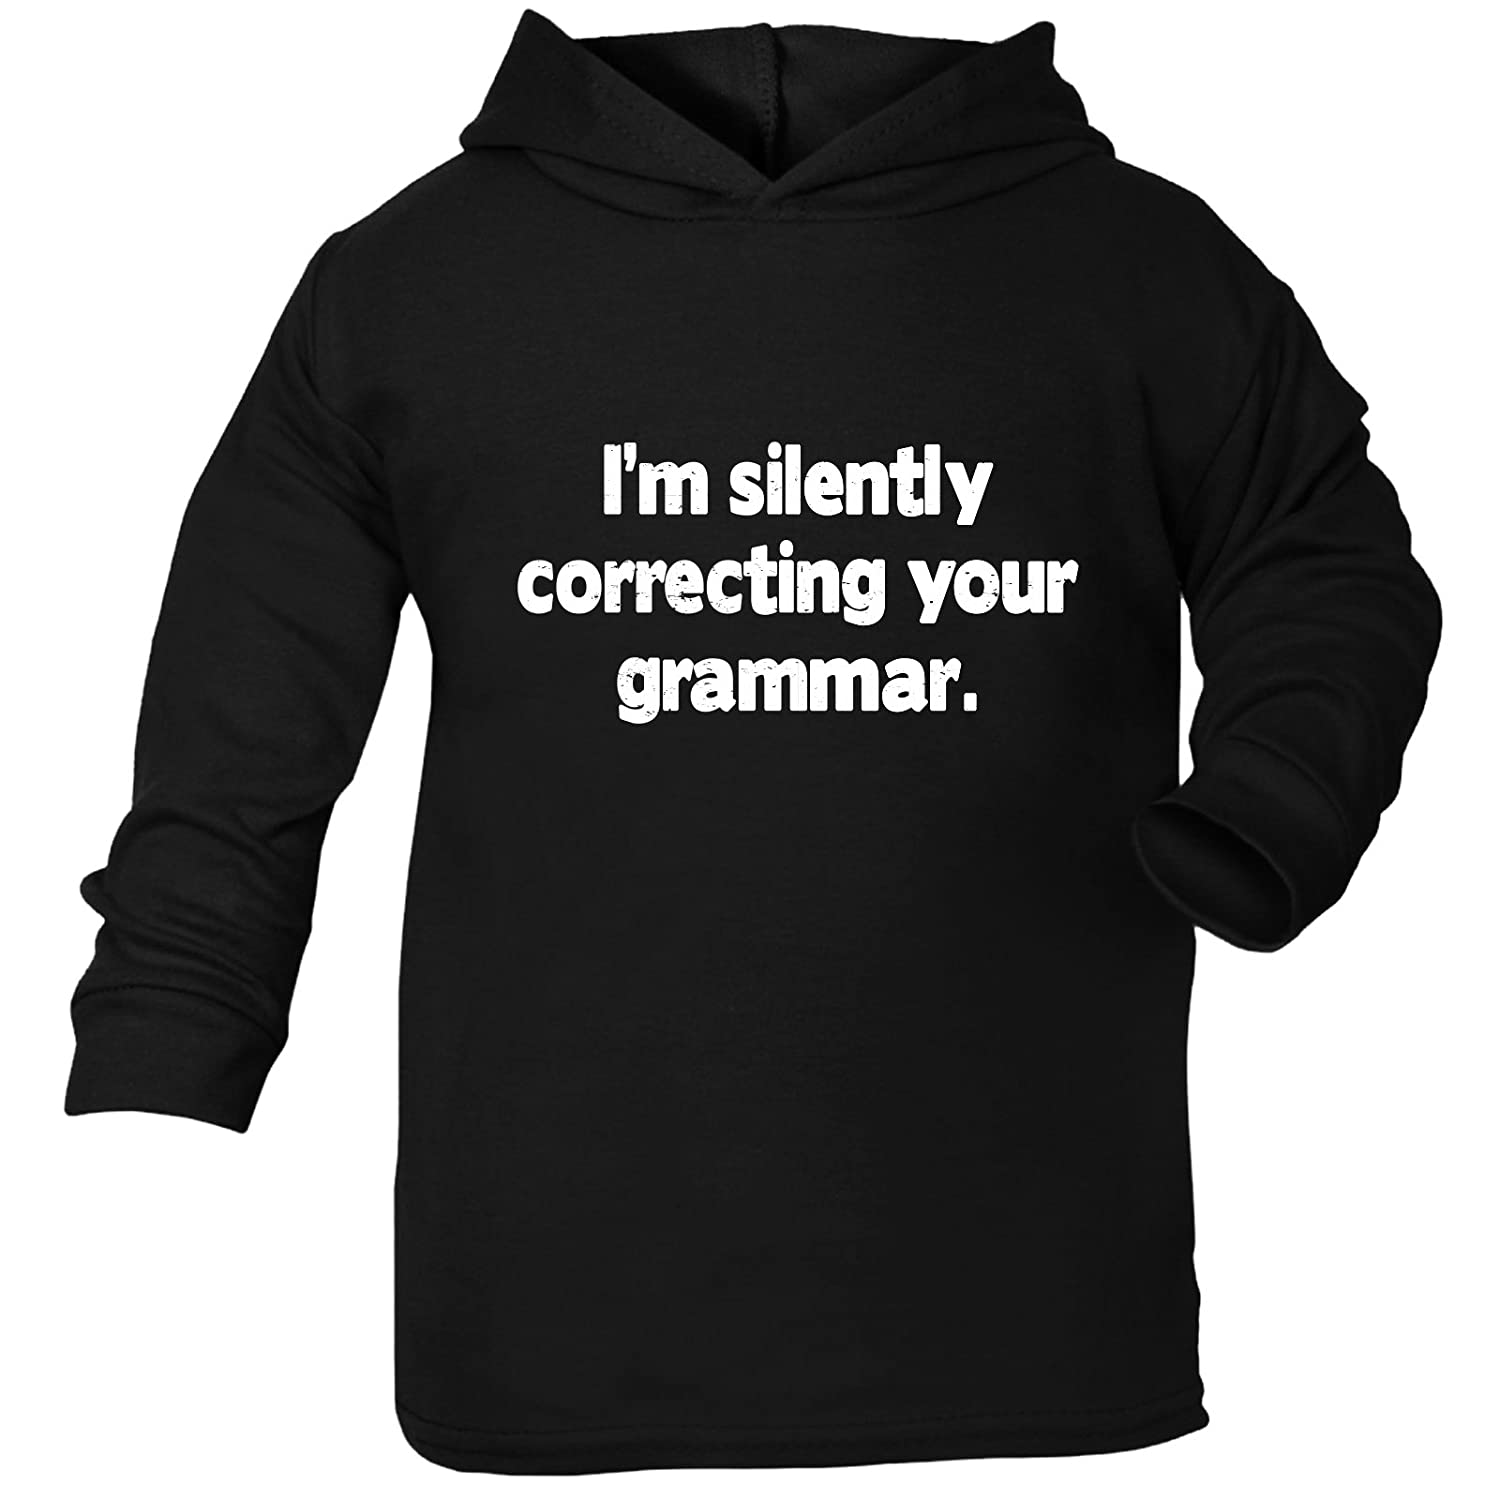 123t Baby I'm Silently Correcting Your Grammar TODDLERS COTTON HOODIE (24-36 - BLACK)